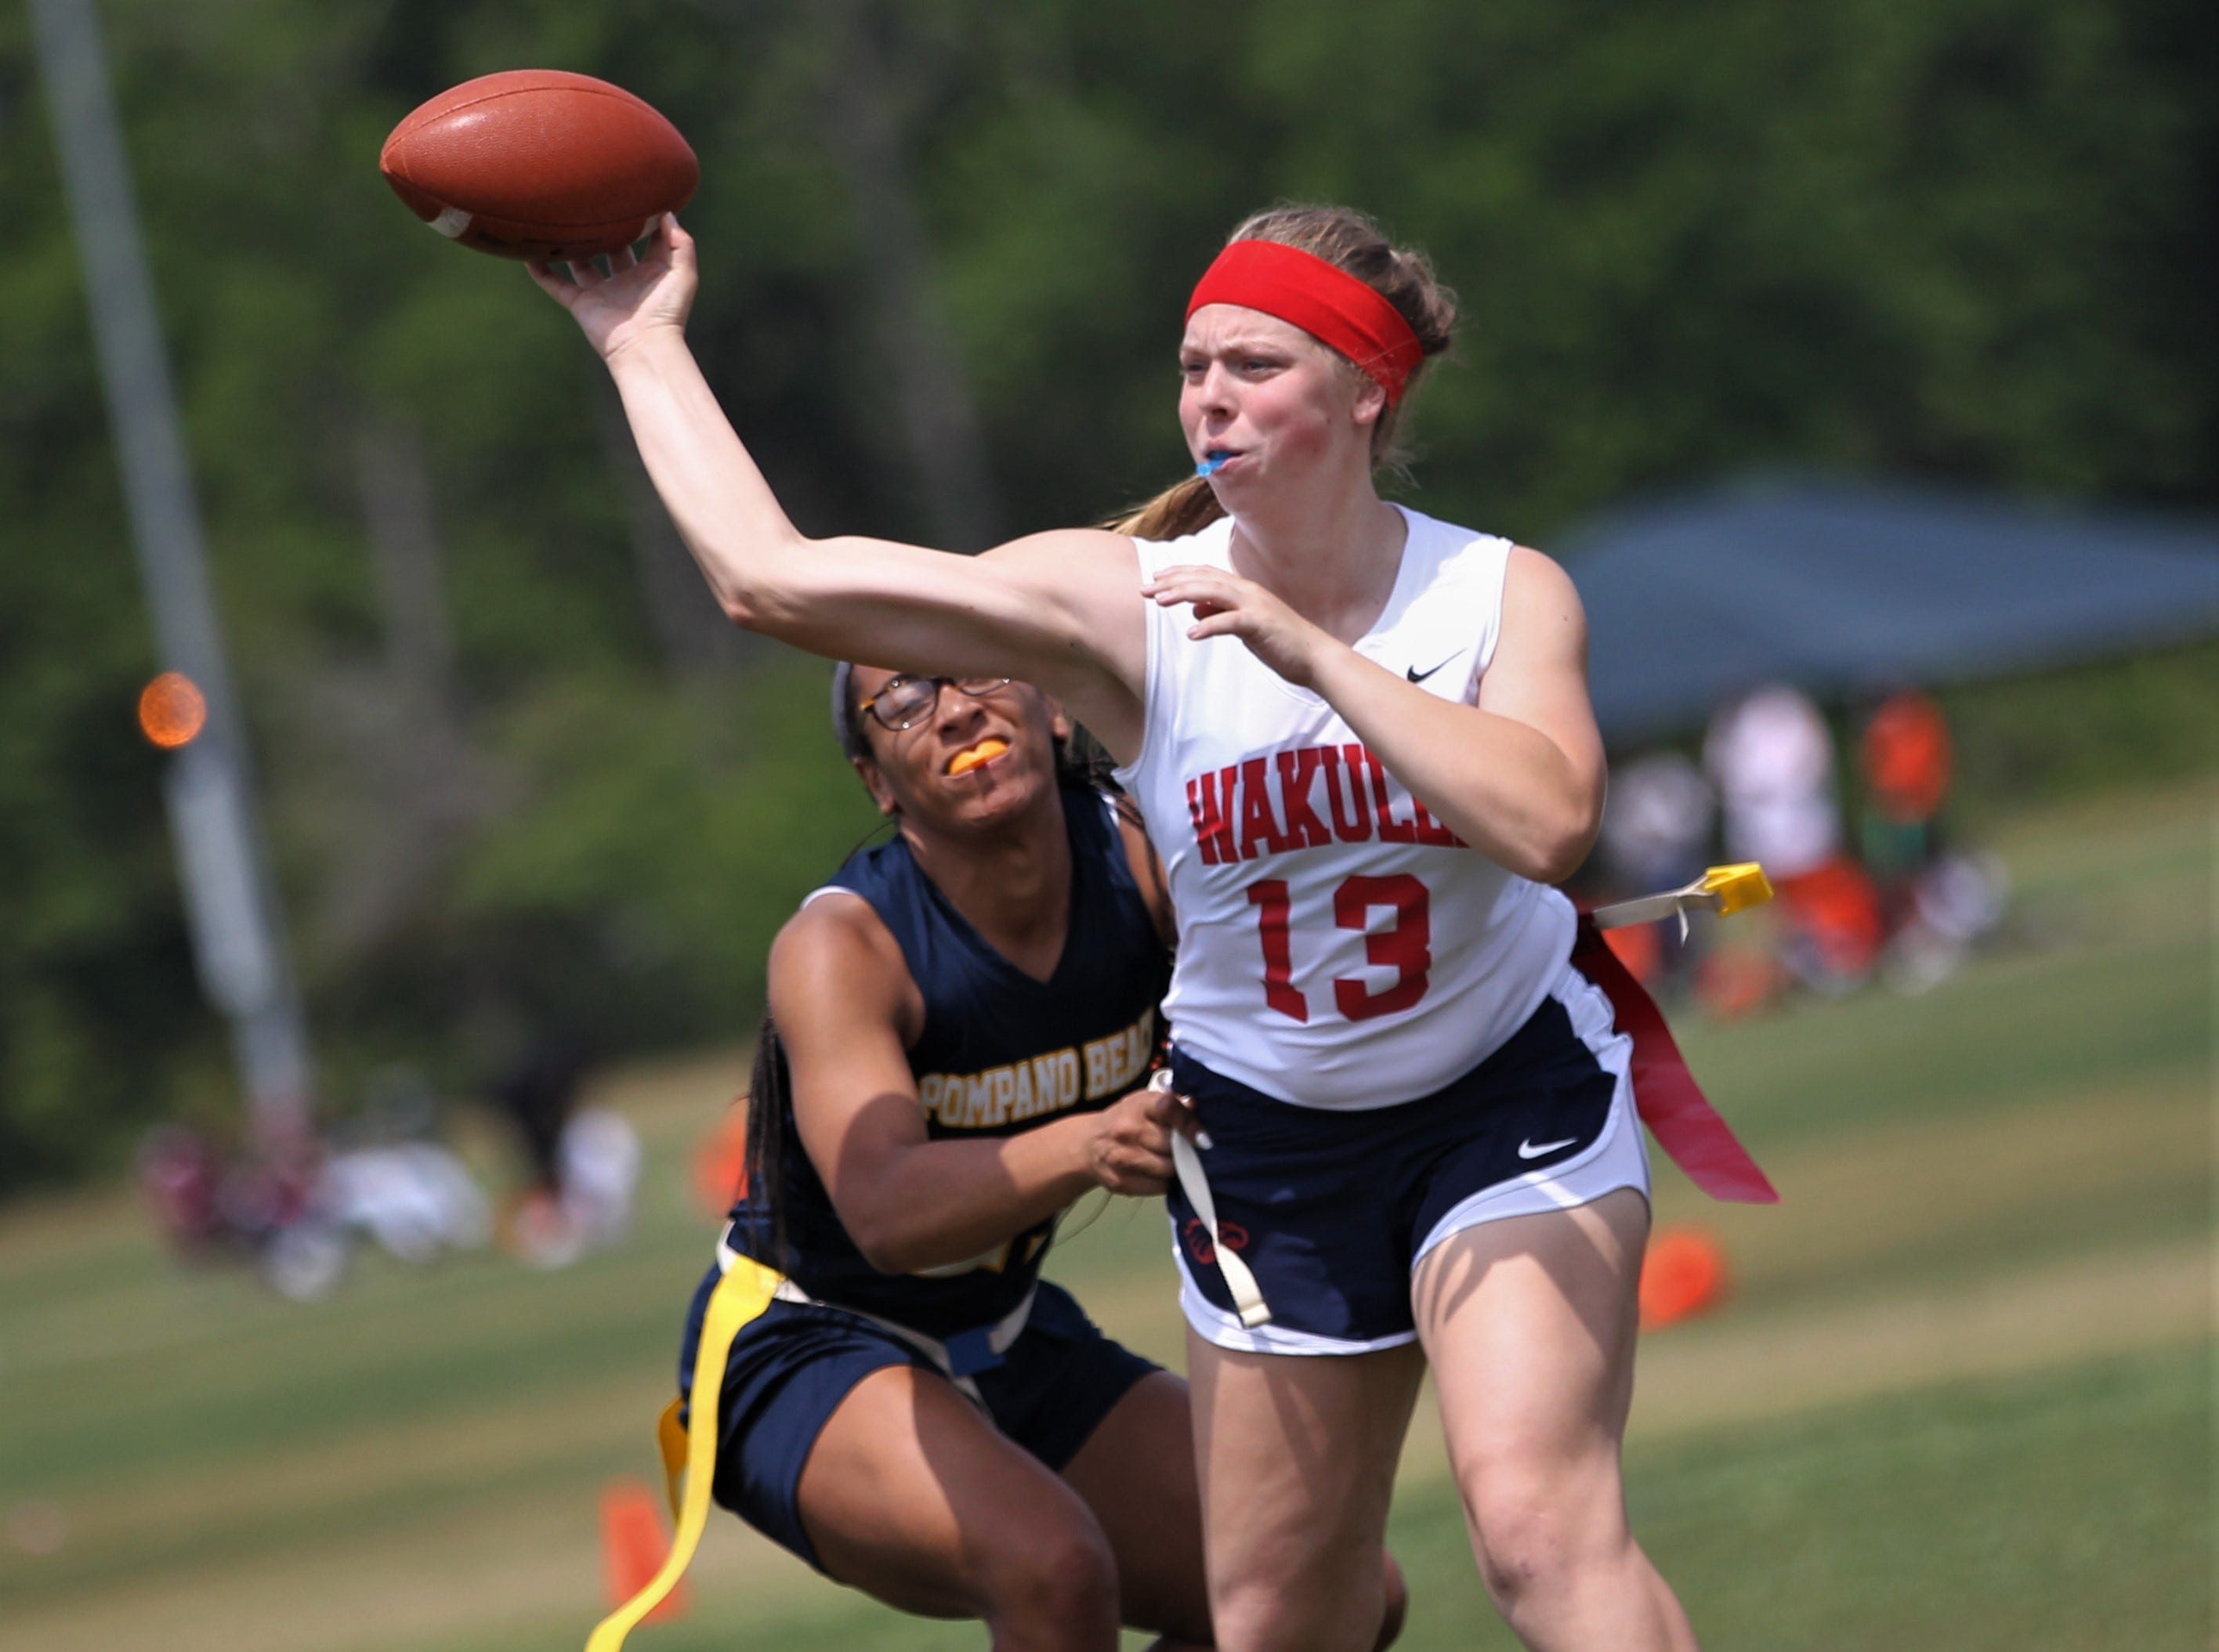 Wakulla quarterback Caitlyn Cason throws a pass against Pompano Beach during the 2019 Capital City Classic flag football tournament at the FSU Rec SportsPlex on April 6, 2019.